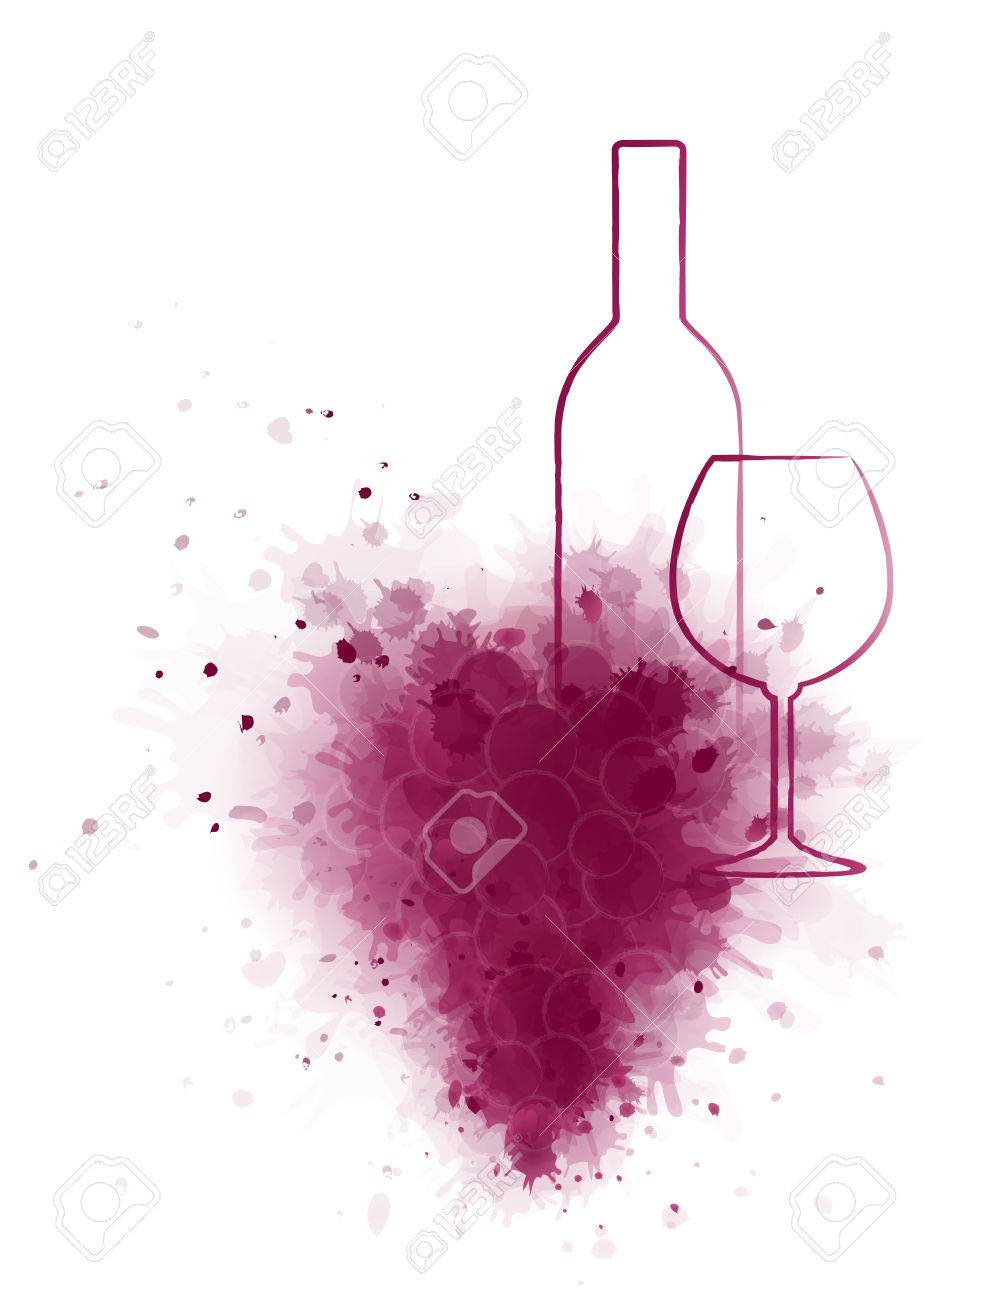 Wine Bottle And Glass Drawing at GetDrawings.com | Free for personal ...